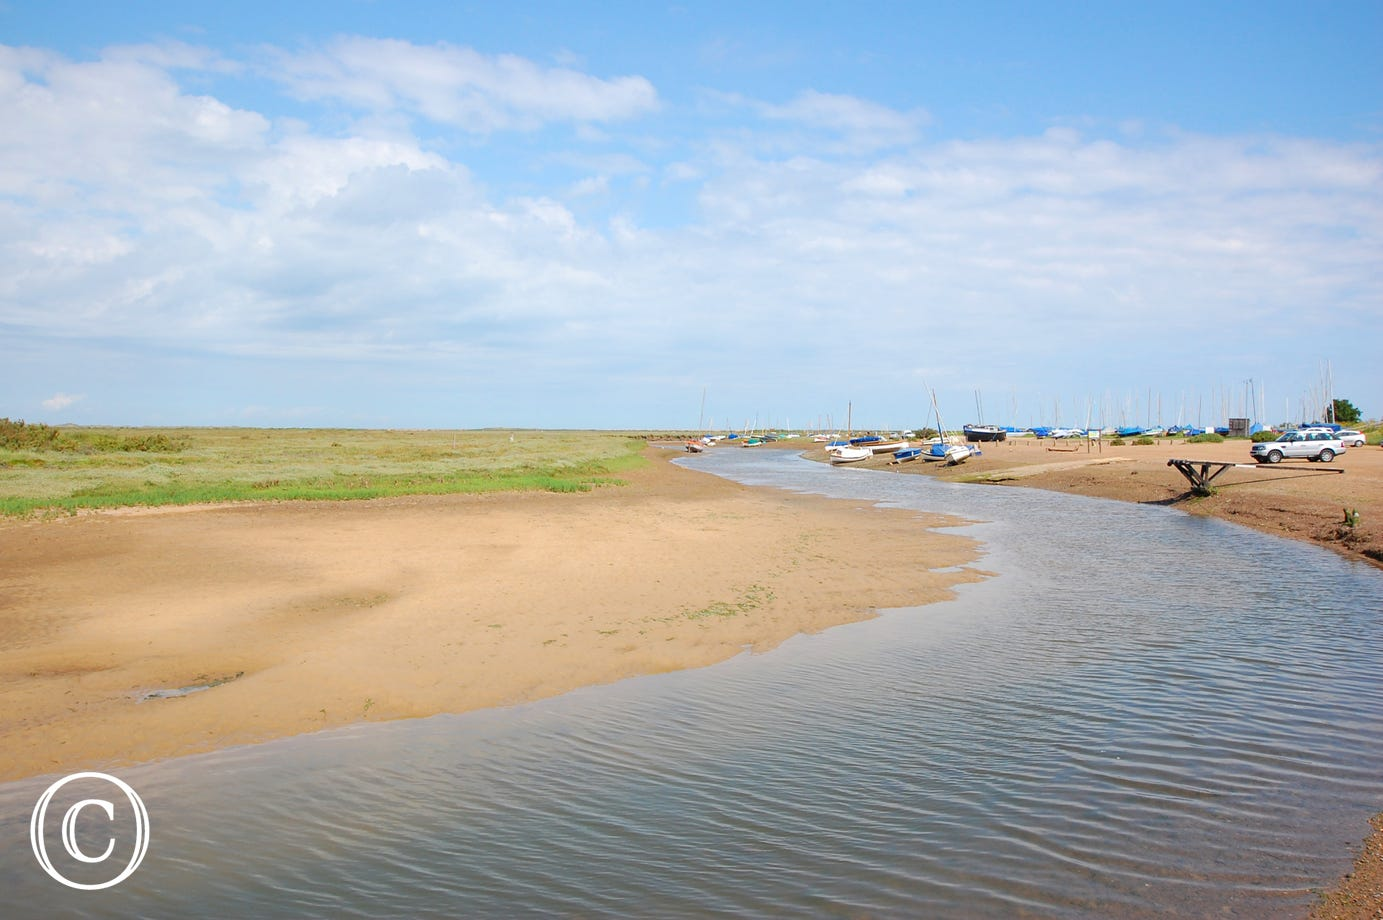 Blakeney Quay is a mere 5 minute walk away